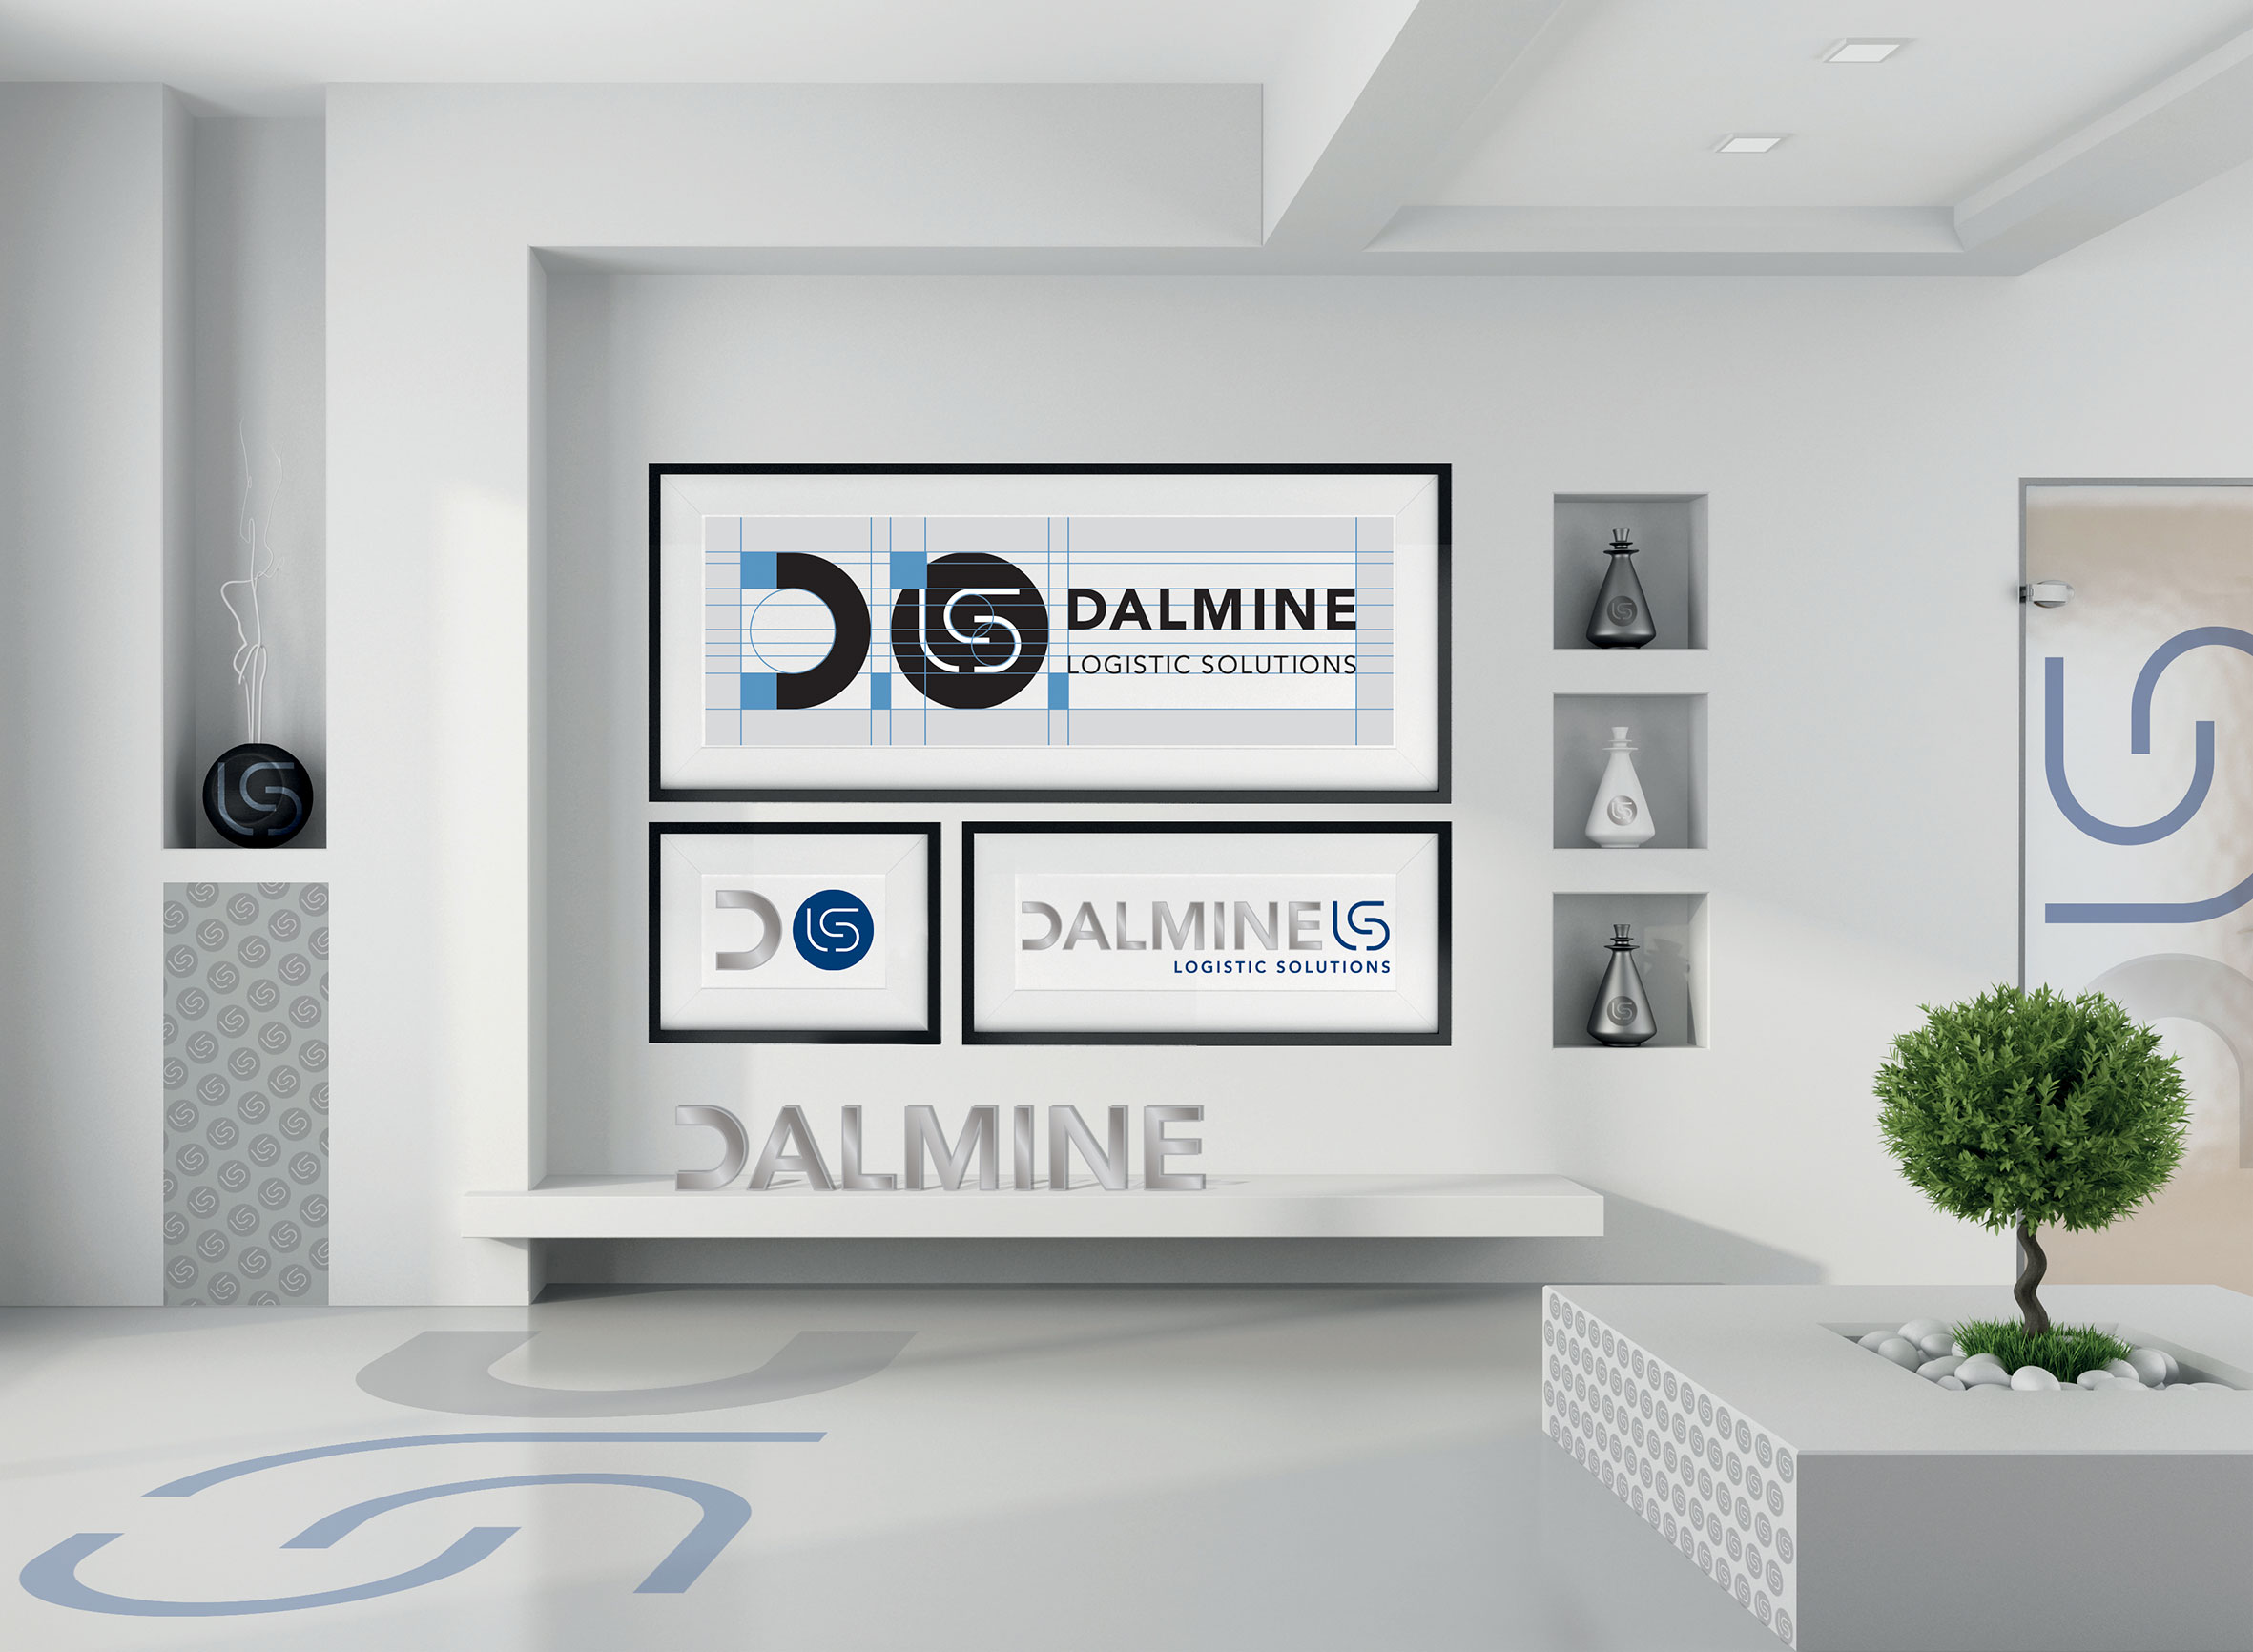 SC-Studio-Chiesa-Communication_Logistica-DLS-Dalmine-Logistic-Solutions-logo